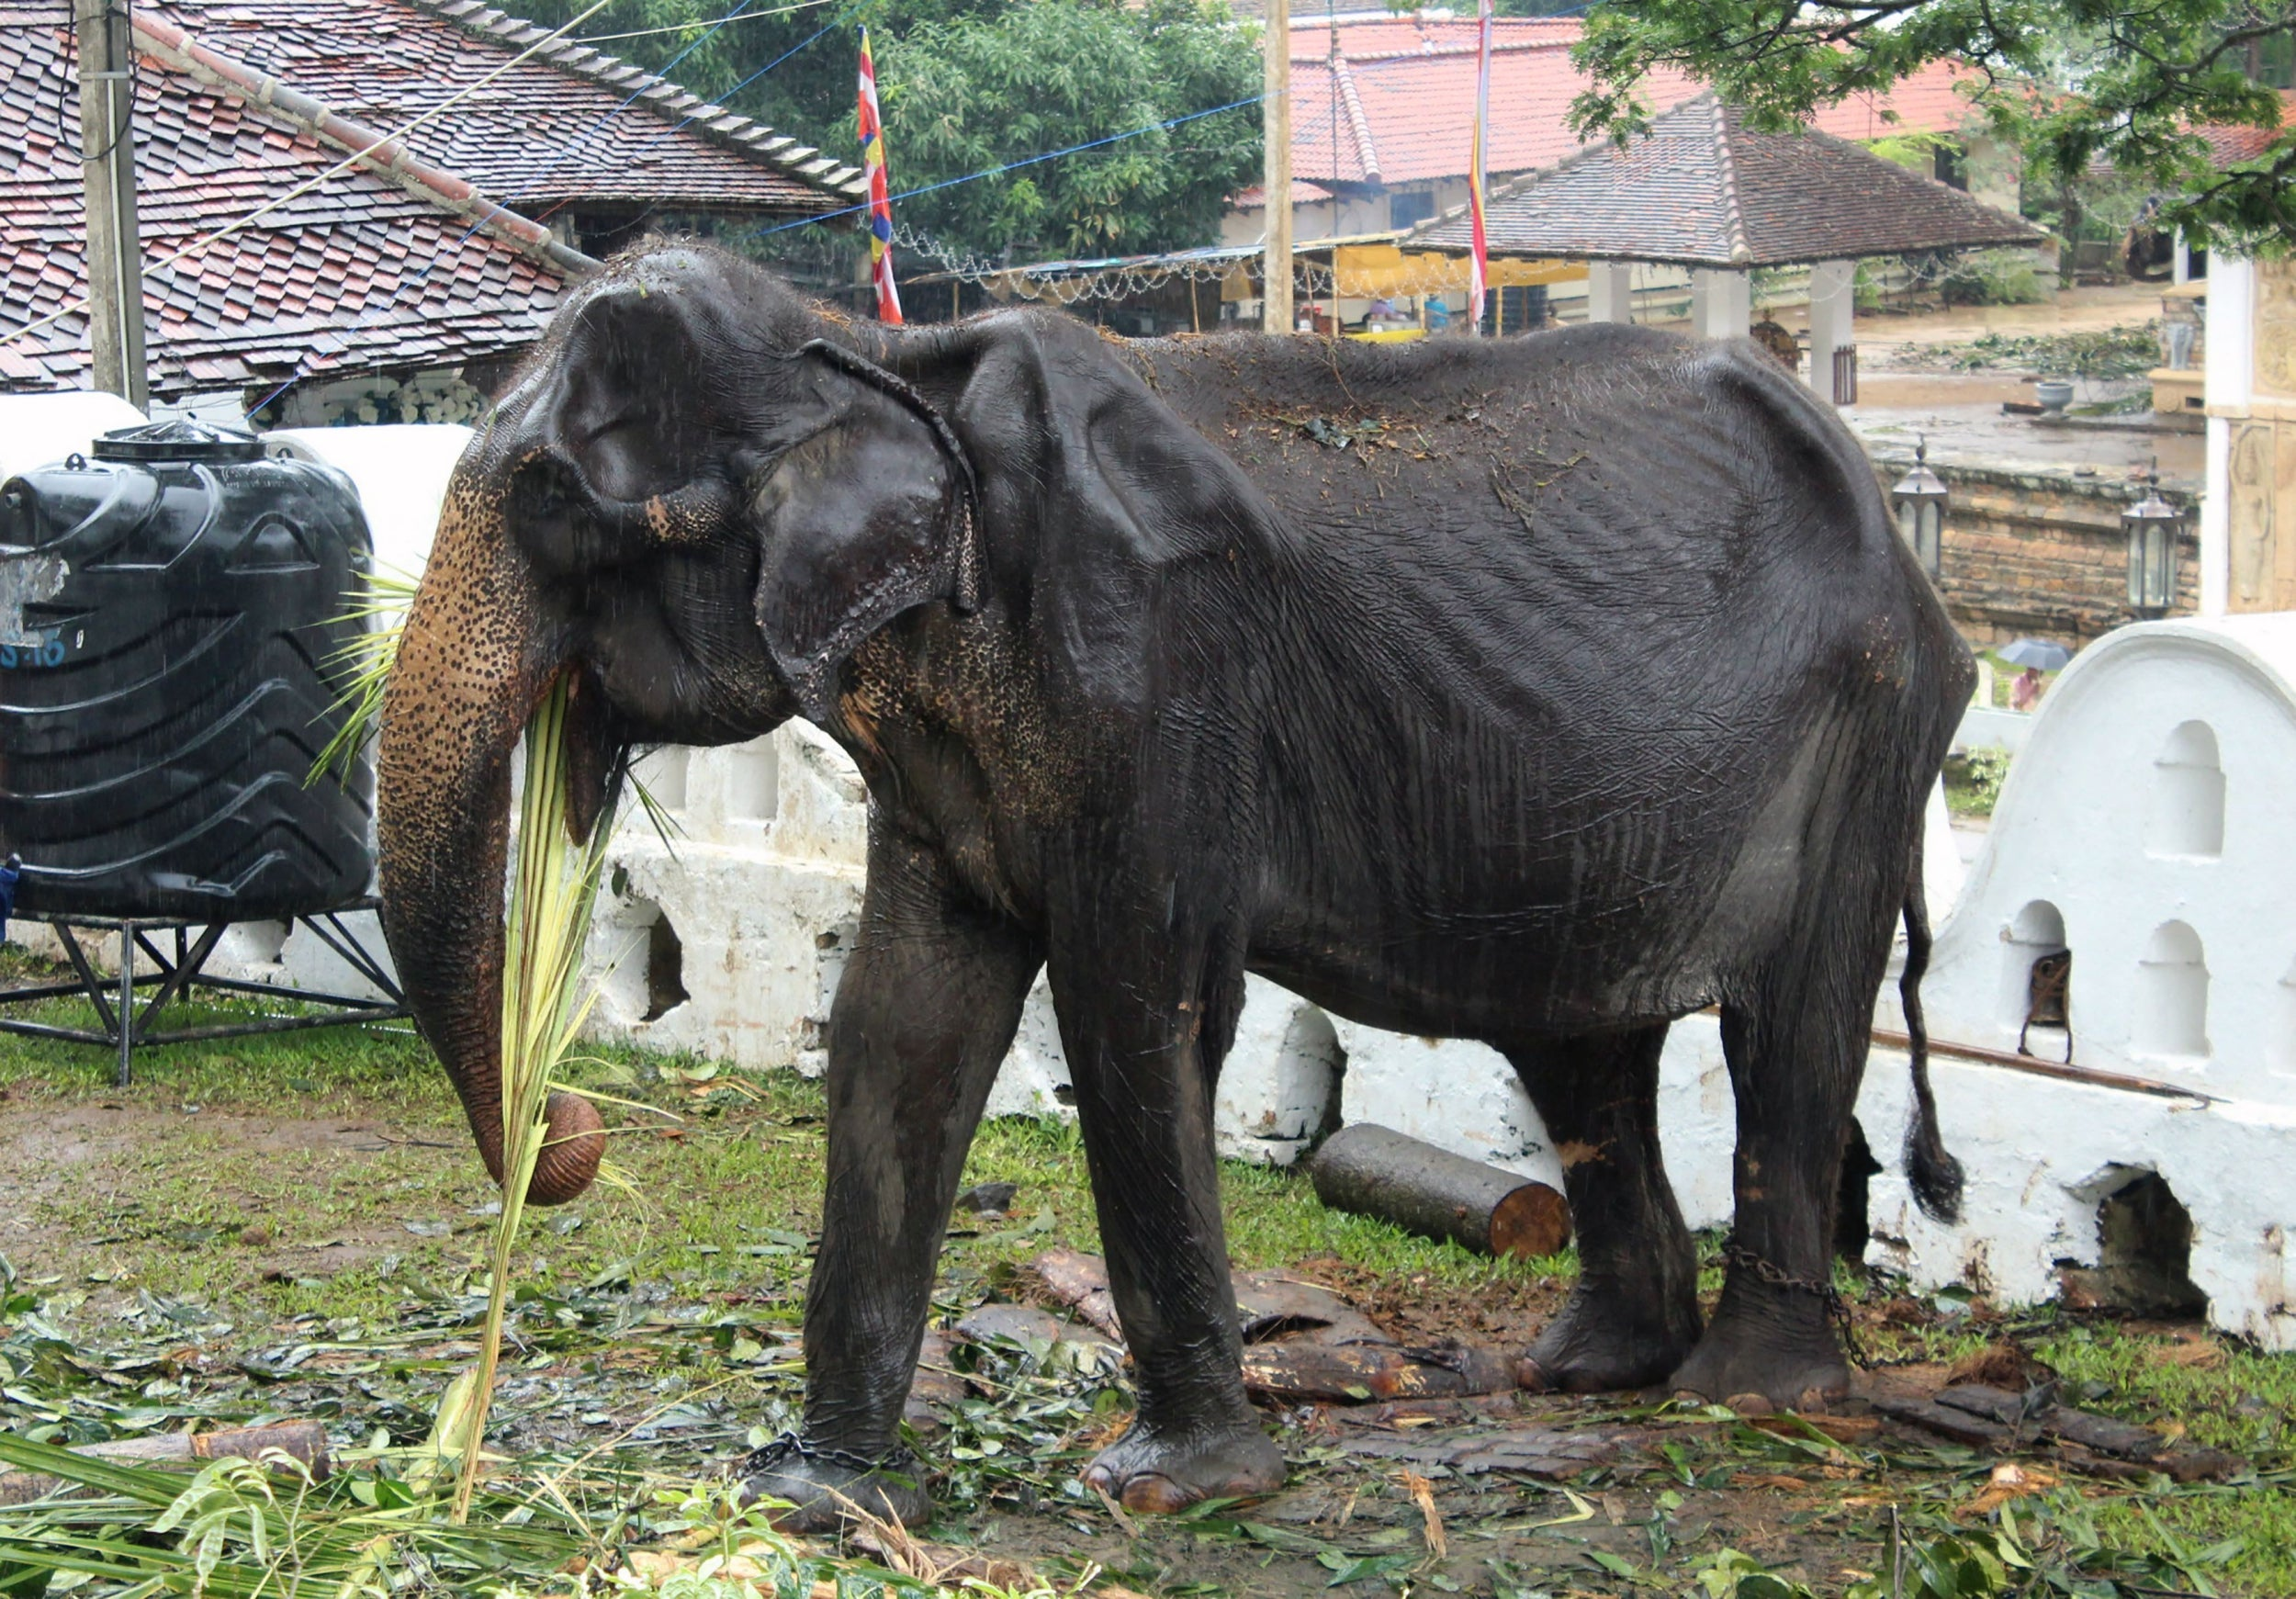 Tikiri: Beloved elephant dies in Sri Lanka after being forced to perform for decades